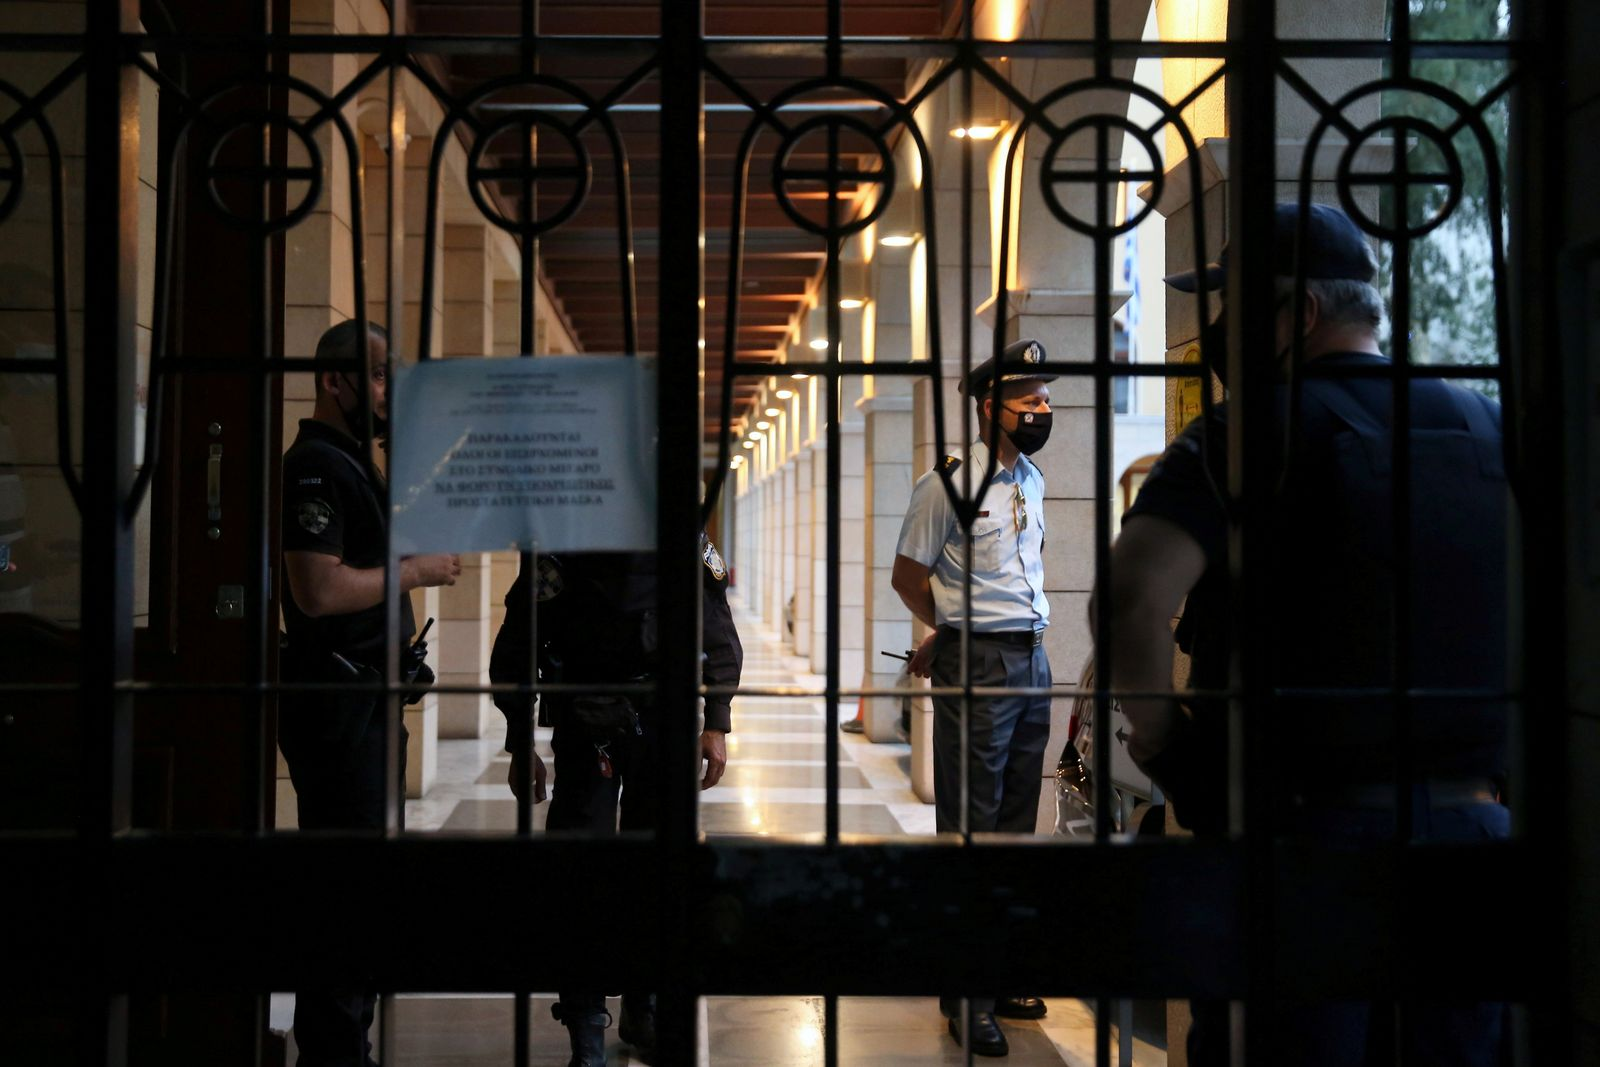 Police officers are seen at the entrance of Petraki Monastery after a priest attacked with acid against seven bishops, in Athens